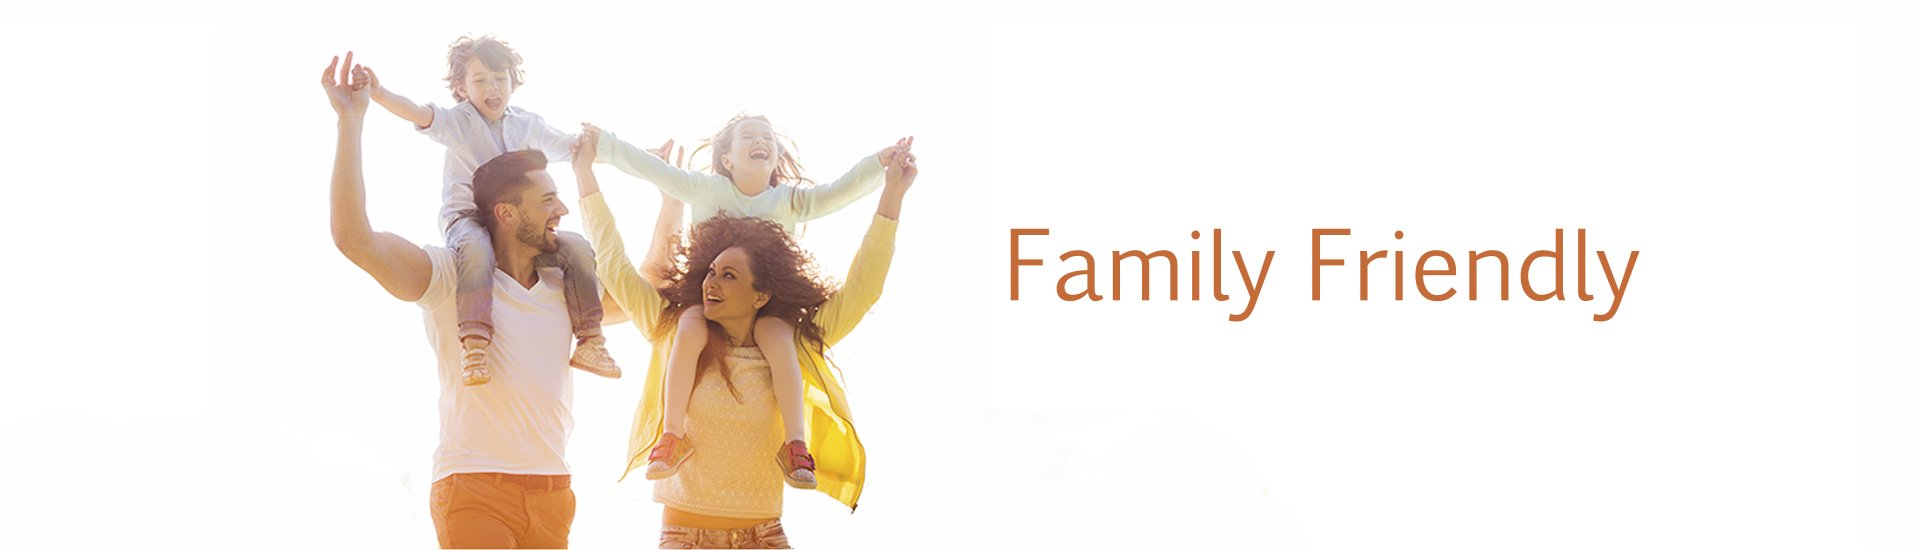 Family Friendly - Erbsville Dental Providing Dental Care for the Whole Family